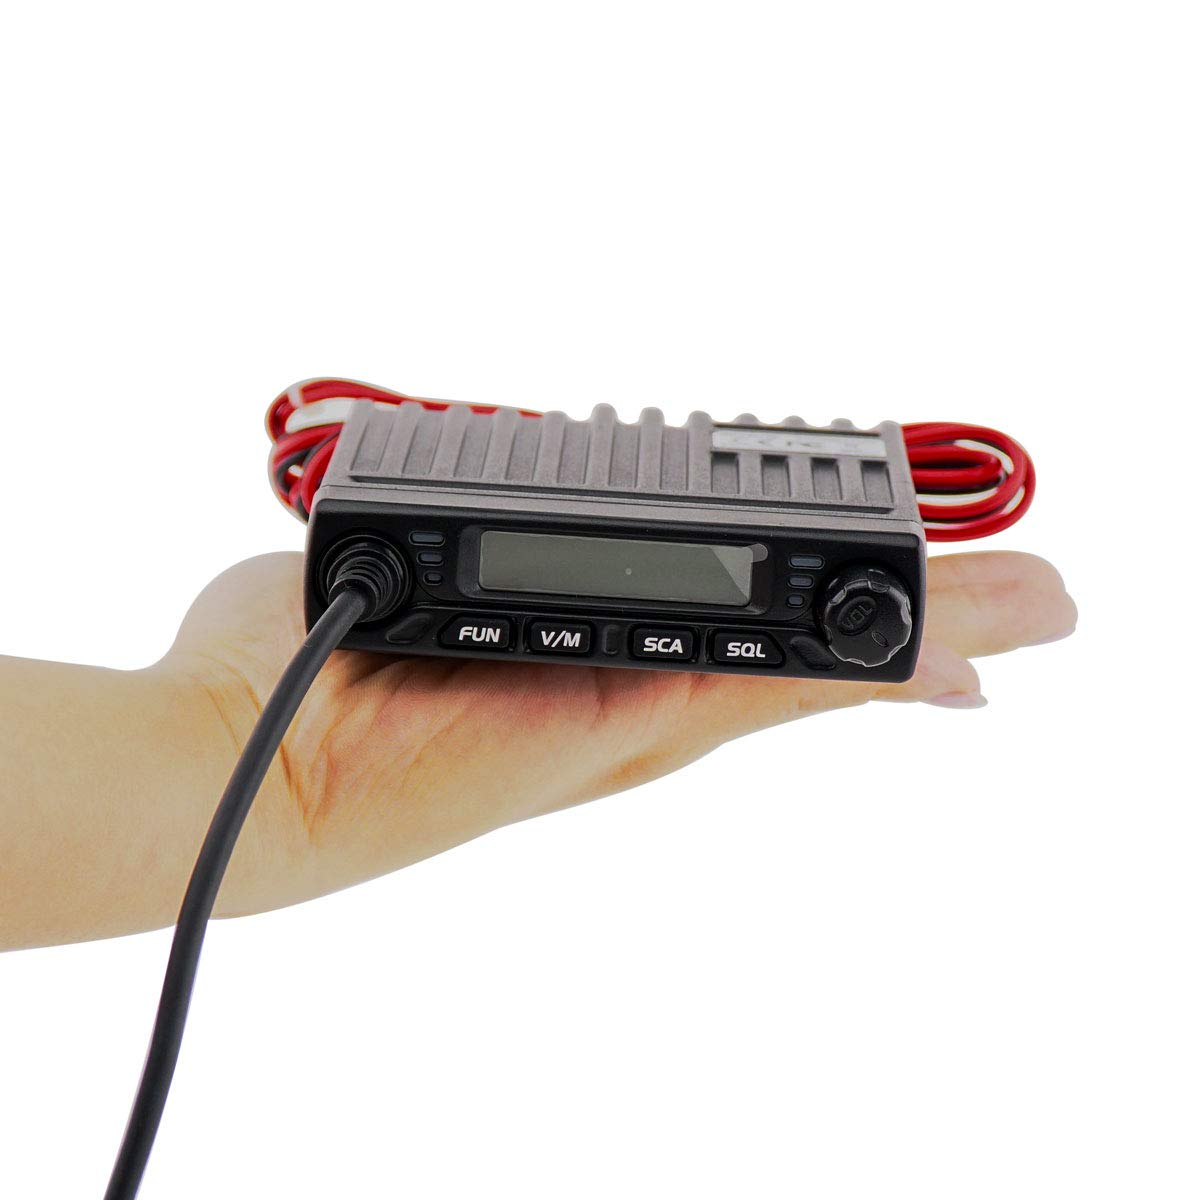 1 Pack Retevis RT98 Mobile Radios Mini Amateur Transceiver 15W UHF Lock LCD 199 Ch 51 CTCSS 1024 DCS Car Ham Mobile Two Way Radio with Speaker Mic